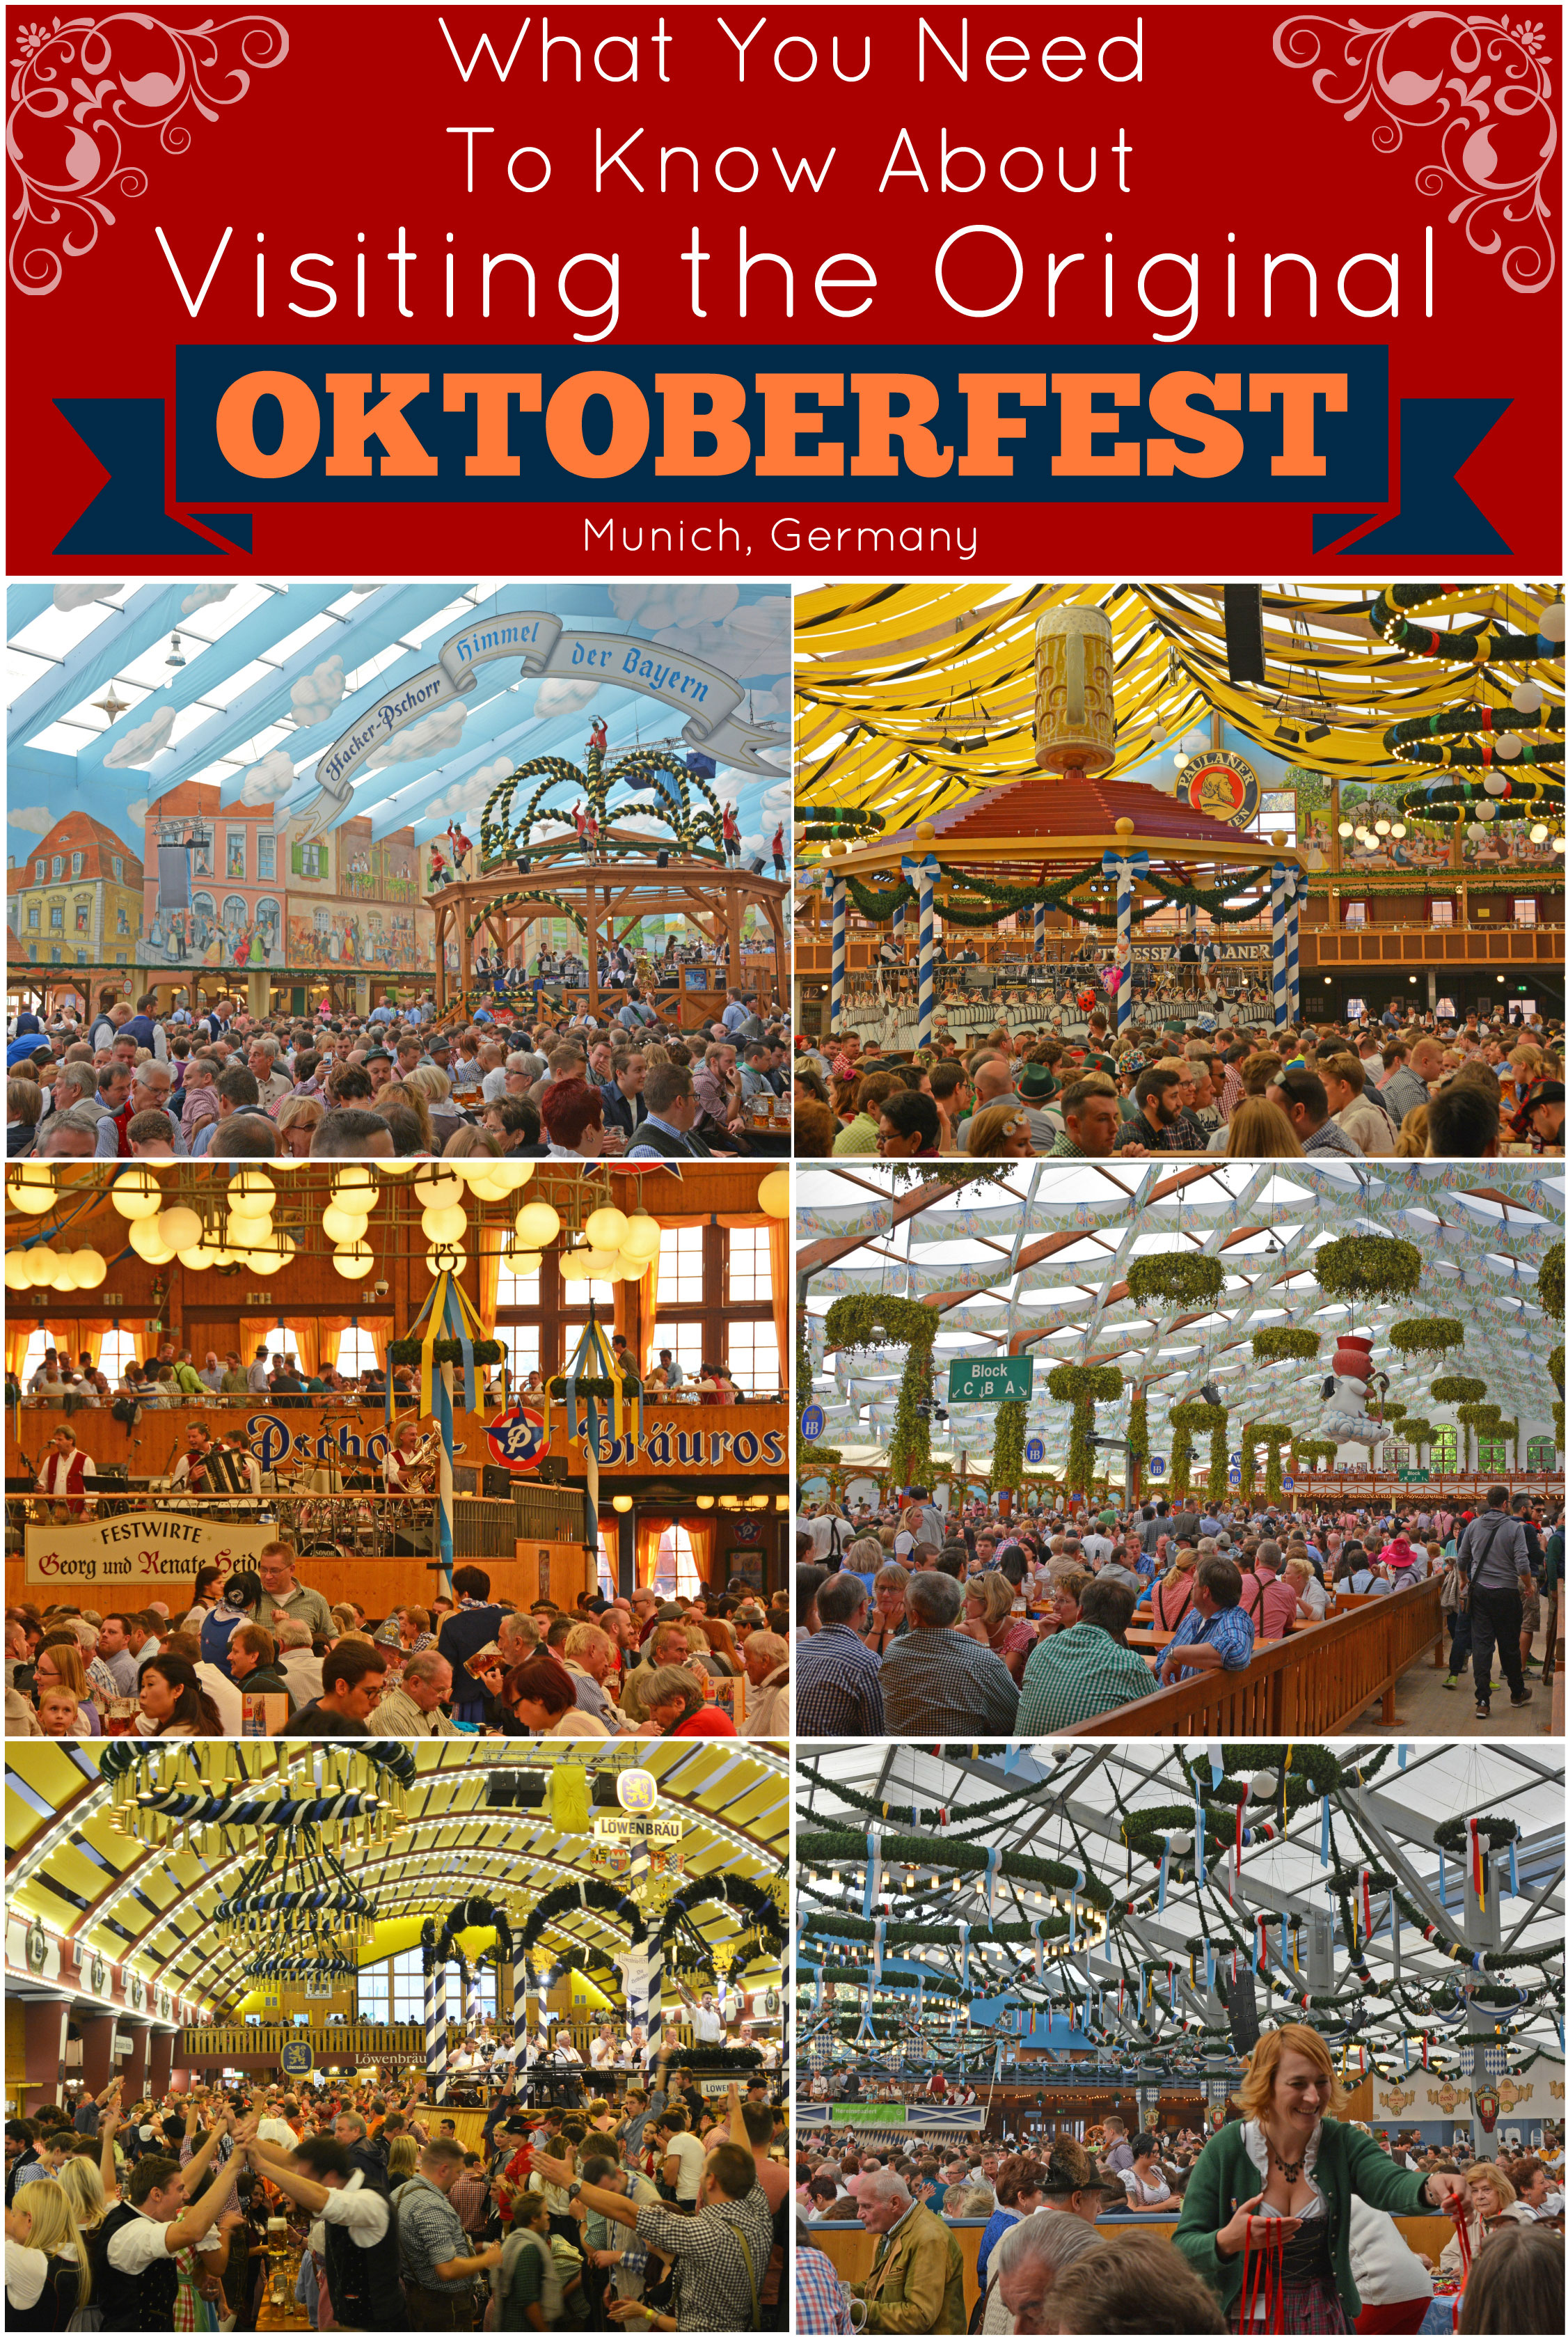 Oktoberfest Tips - Things to Know About Attending Oktoberfest in Munich Germany. This guide includes info on tickets, tents, rides, food, and more! #oktoberfest #munich #germany #beerfestival #beer #bavaria